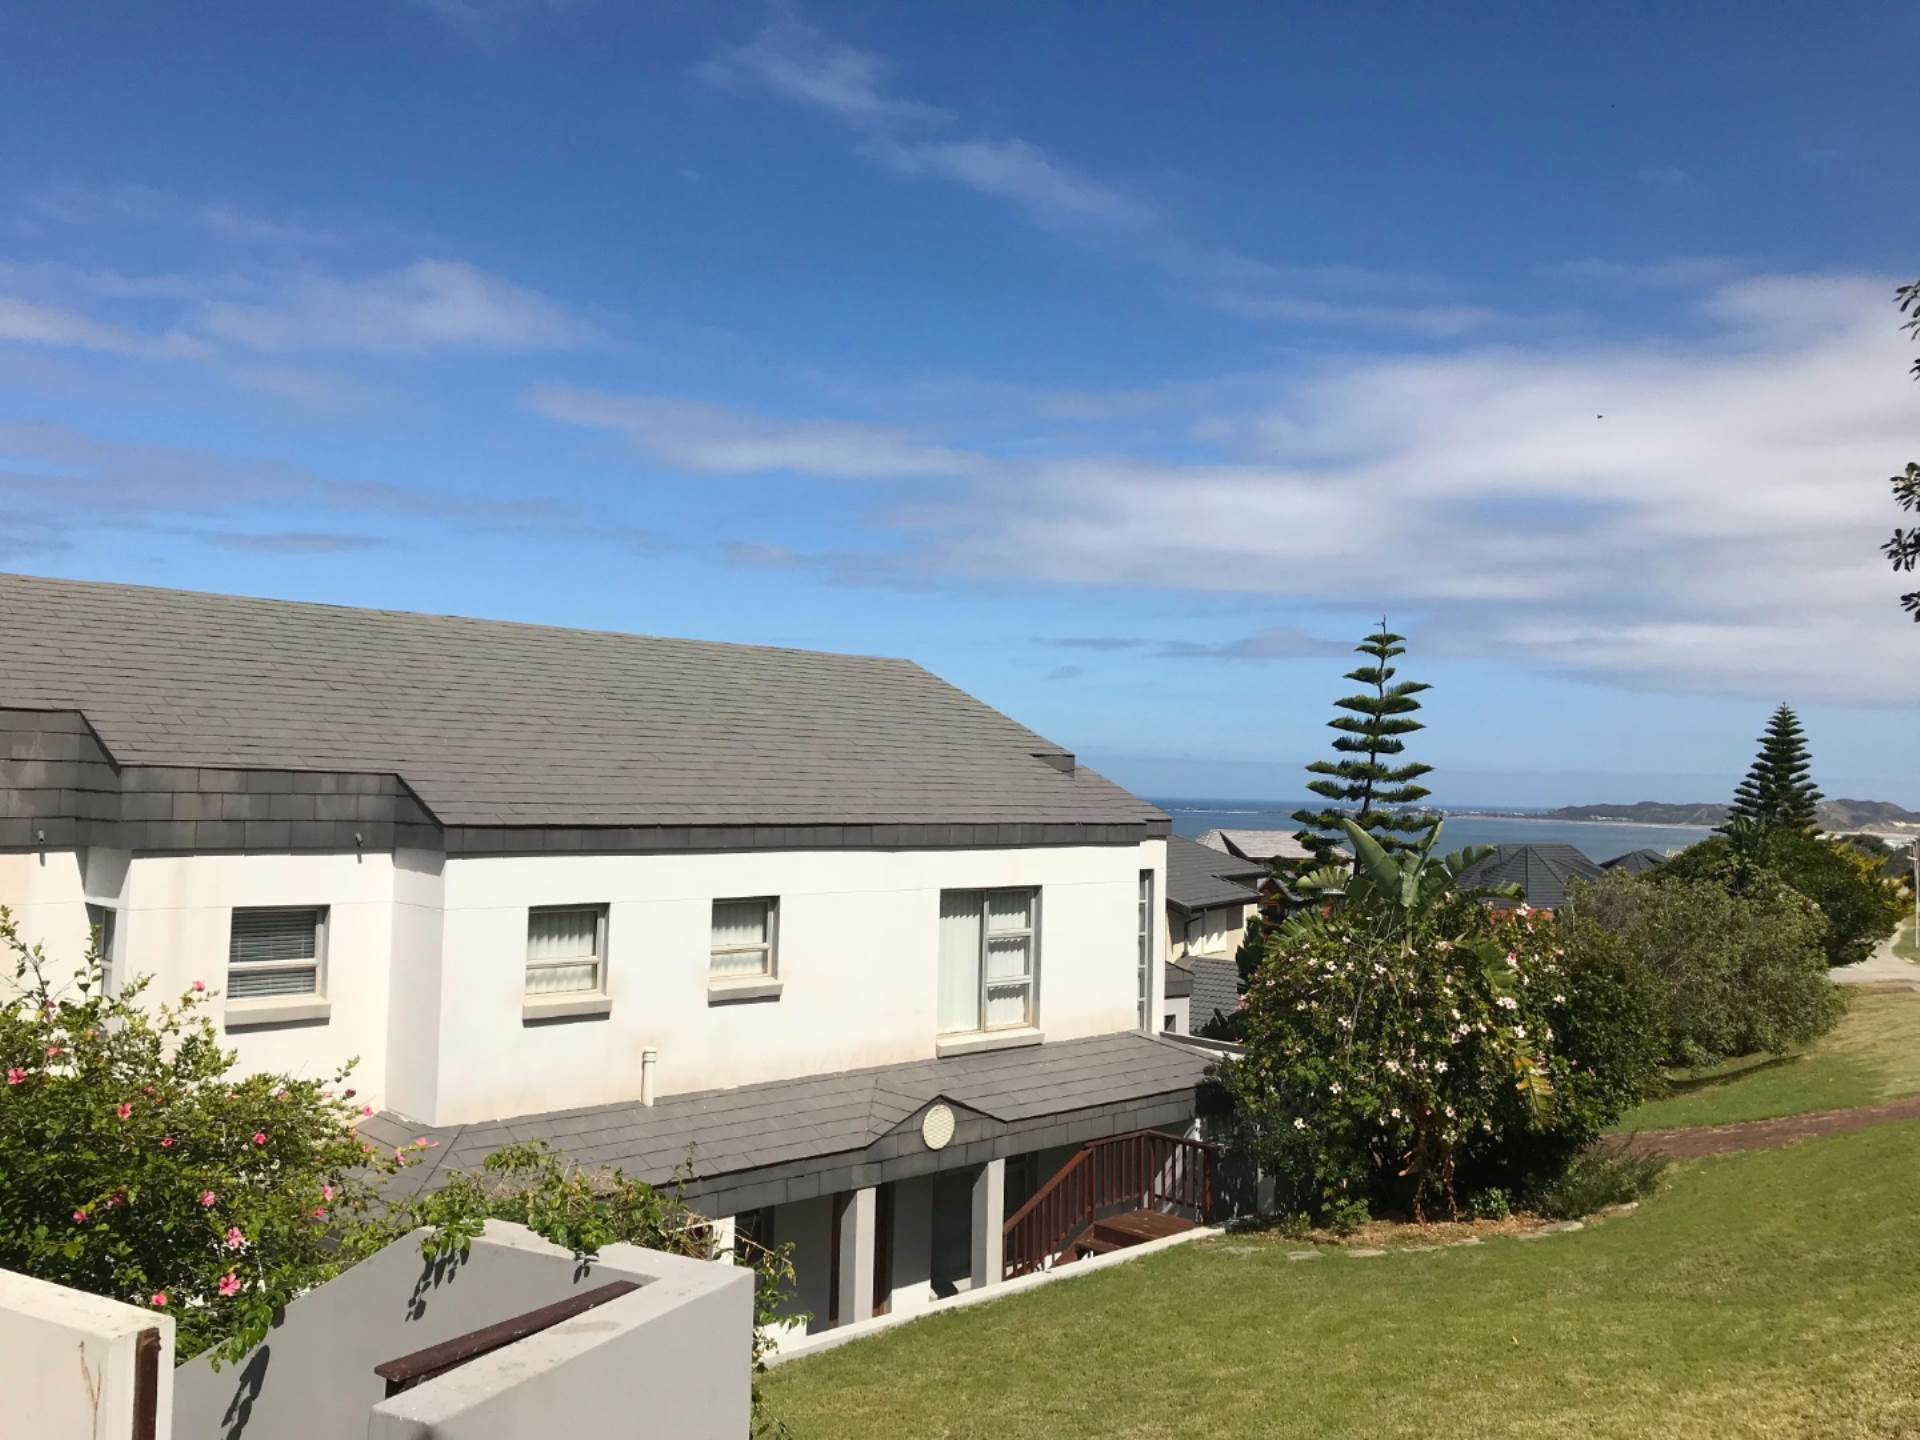 3 BedroomHouse For Sale In Brenton On Sea